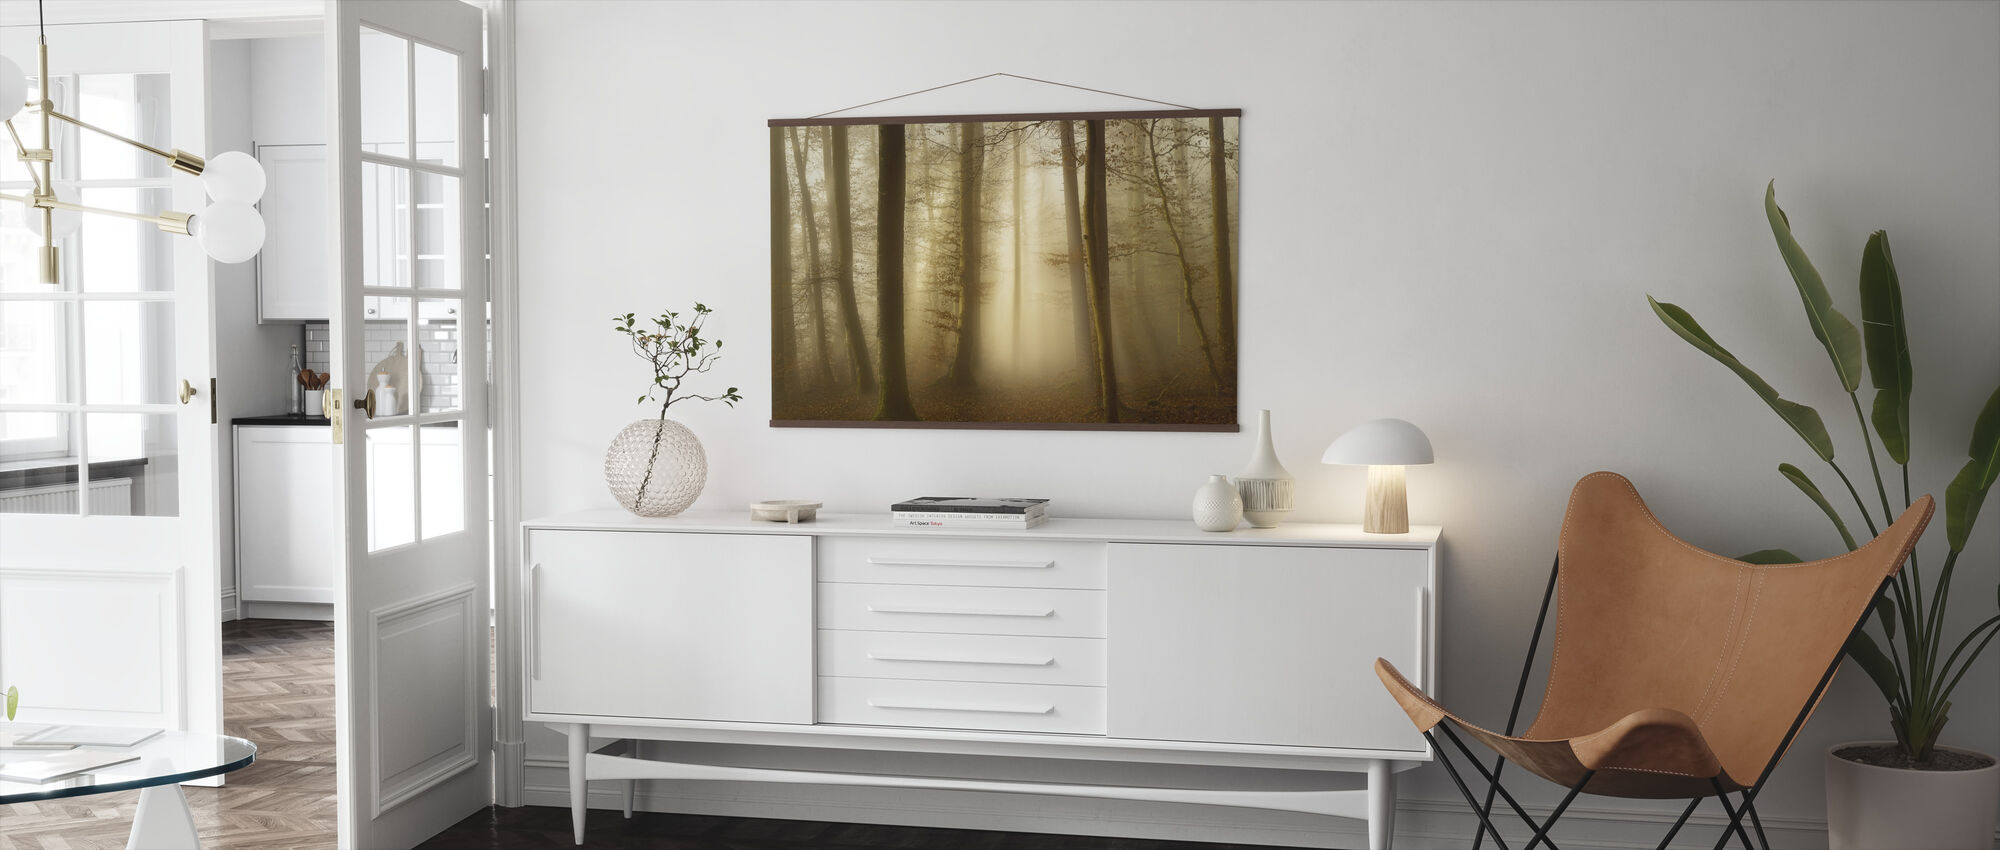 Into the Trees - Poster - Living Room